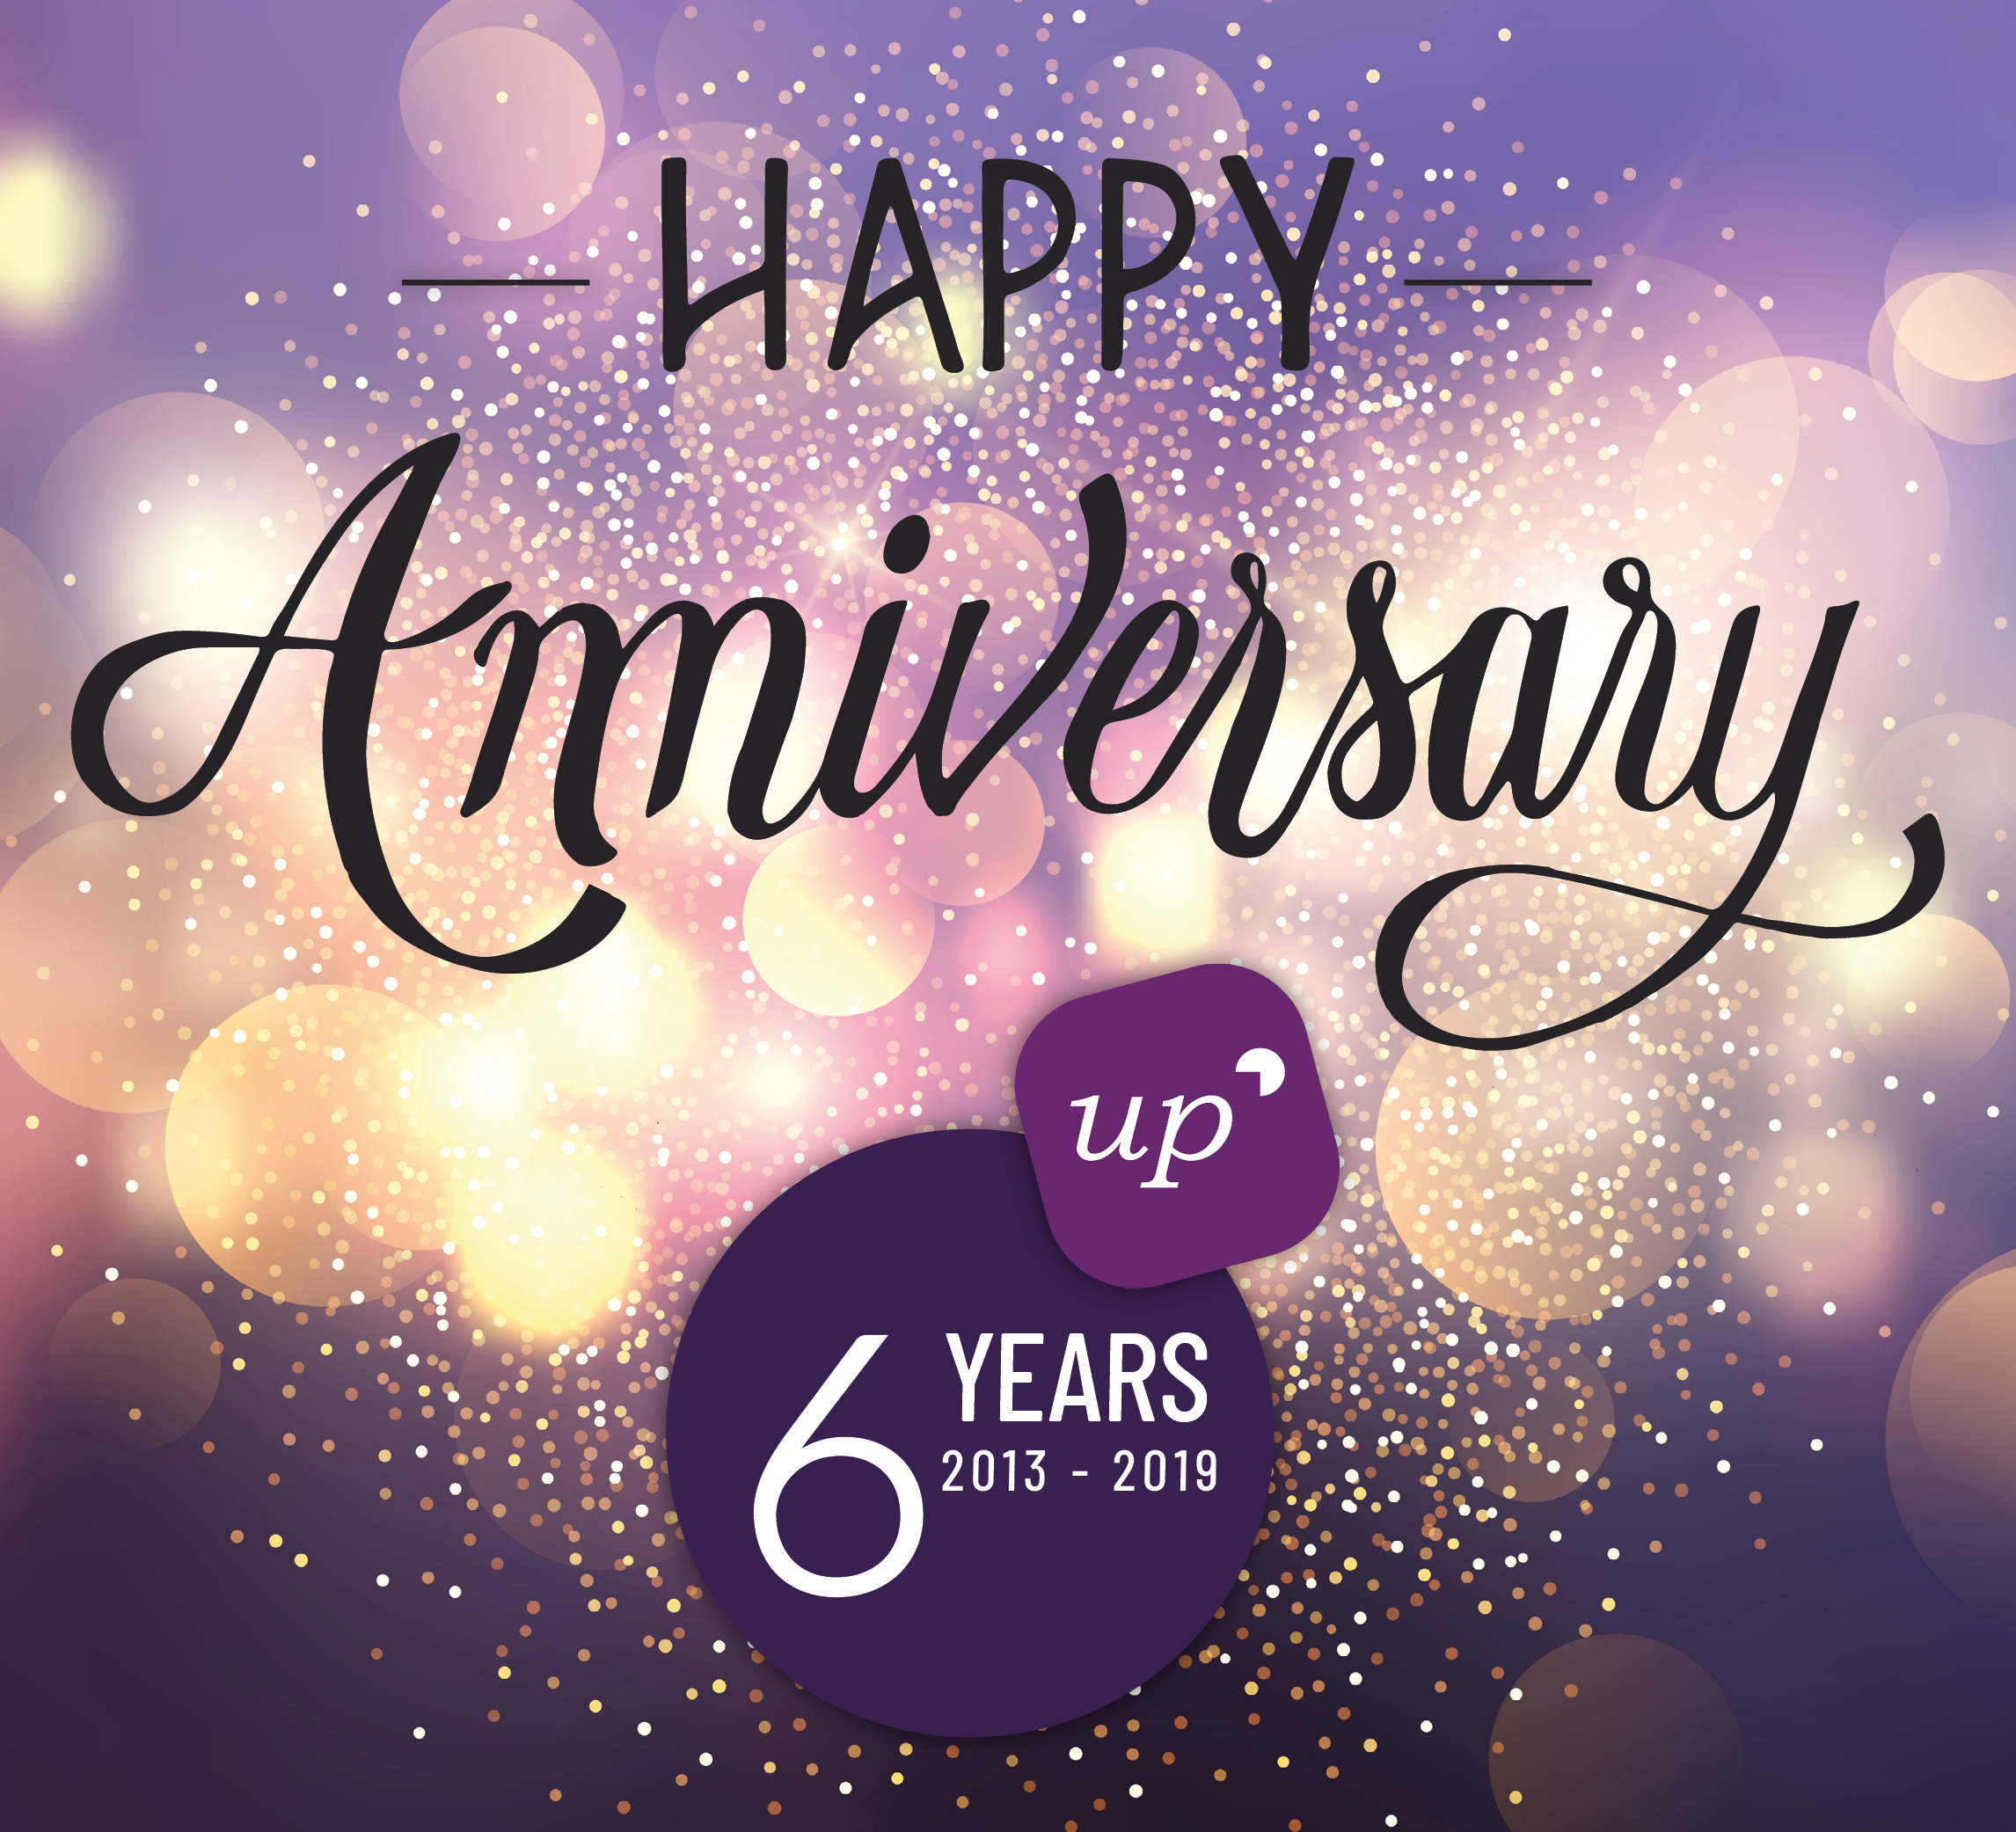 UpCRM Luxembourg turned 6 in September 2019!